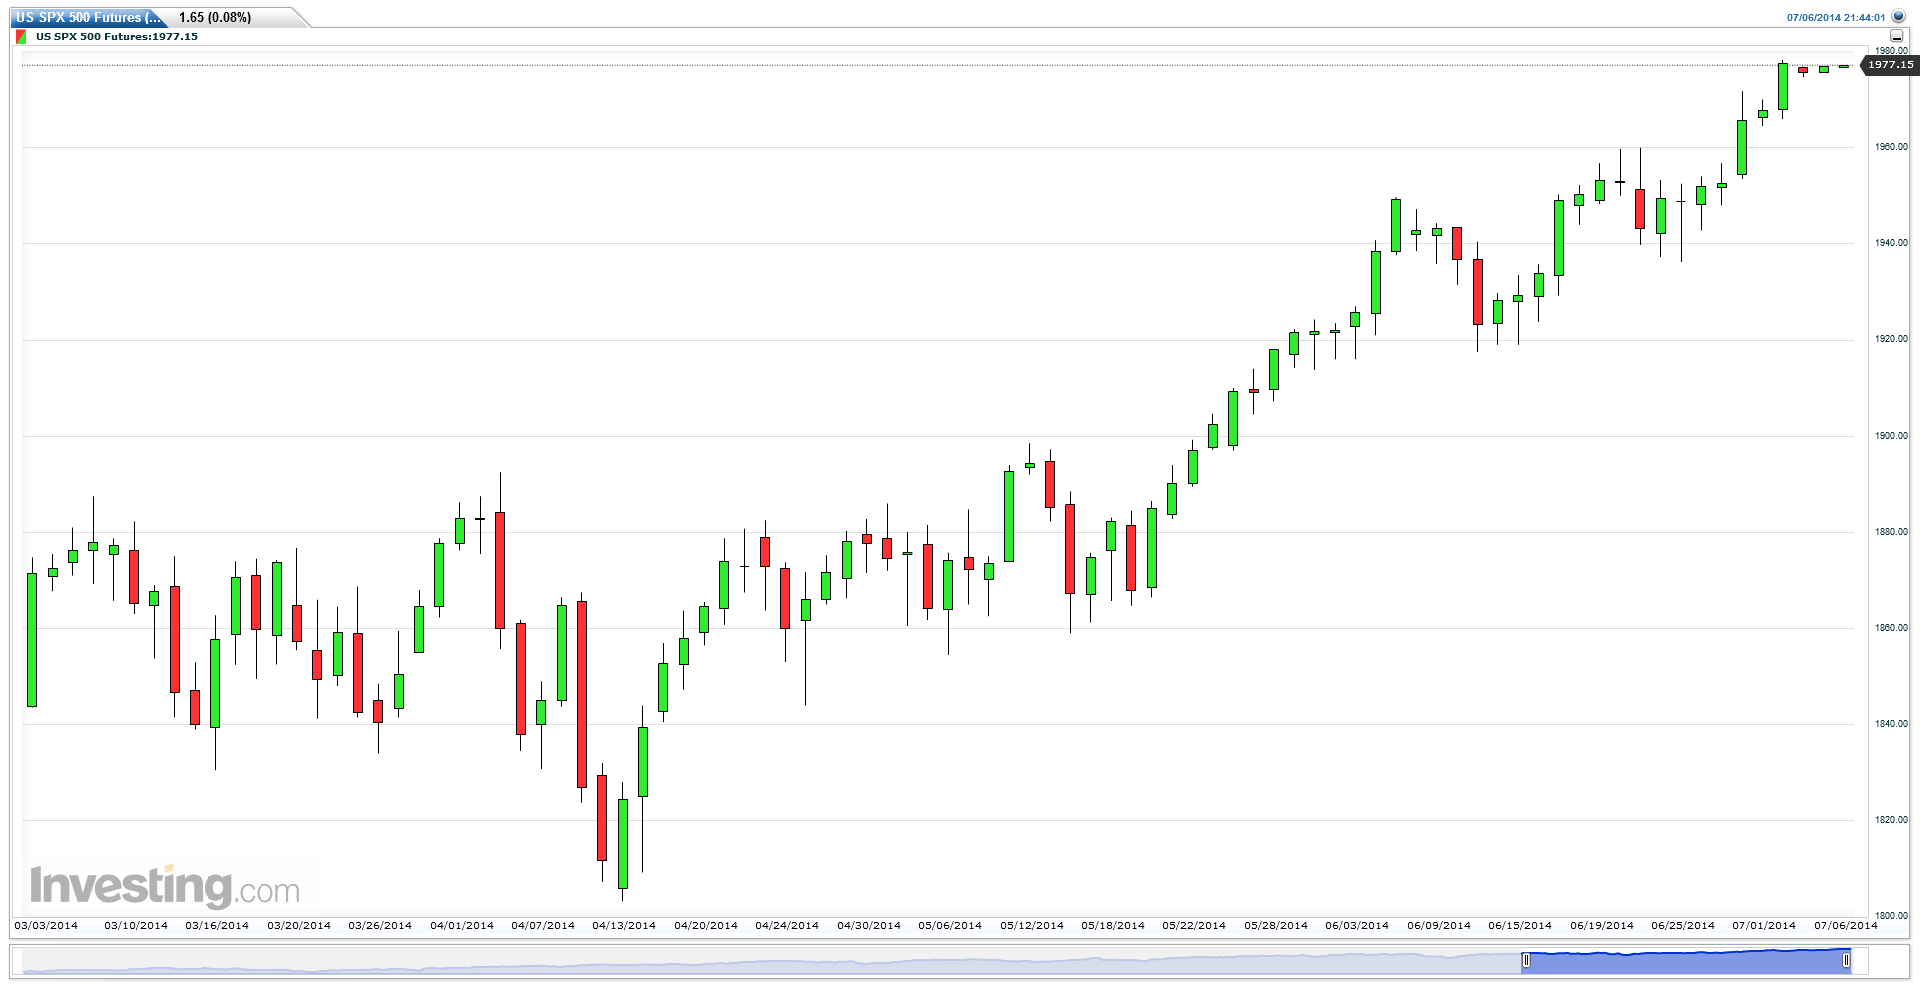 US SPX 500 Futures (Daily), July 6, 2014